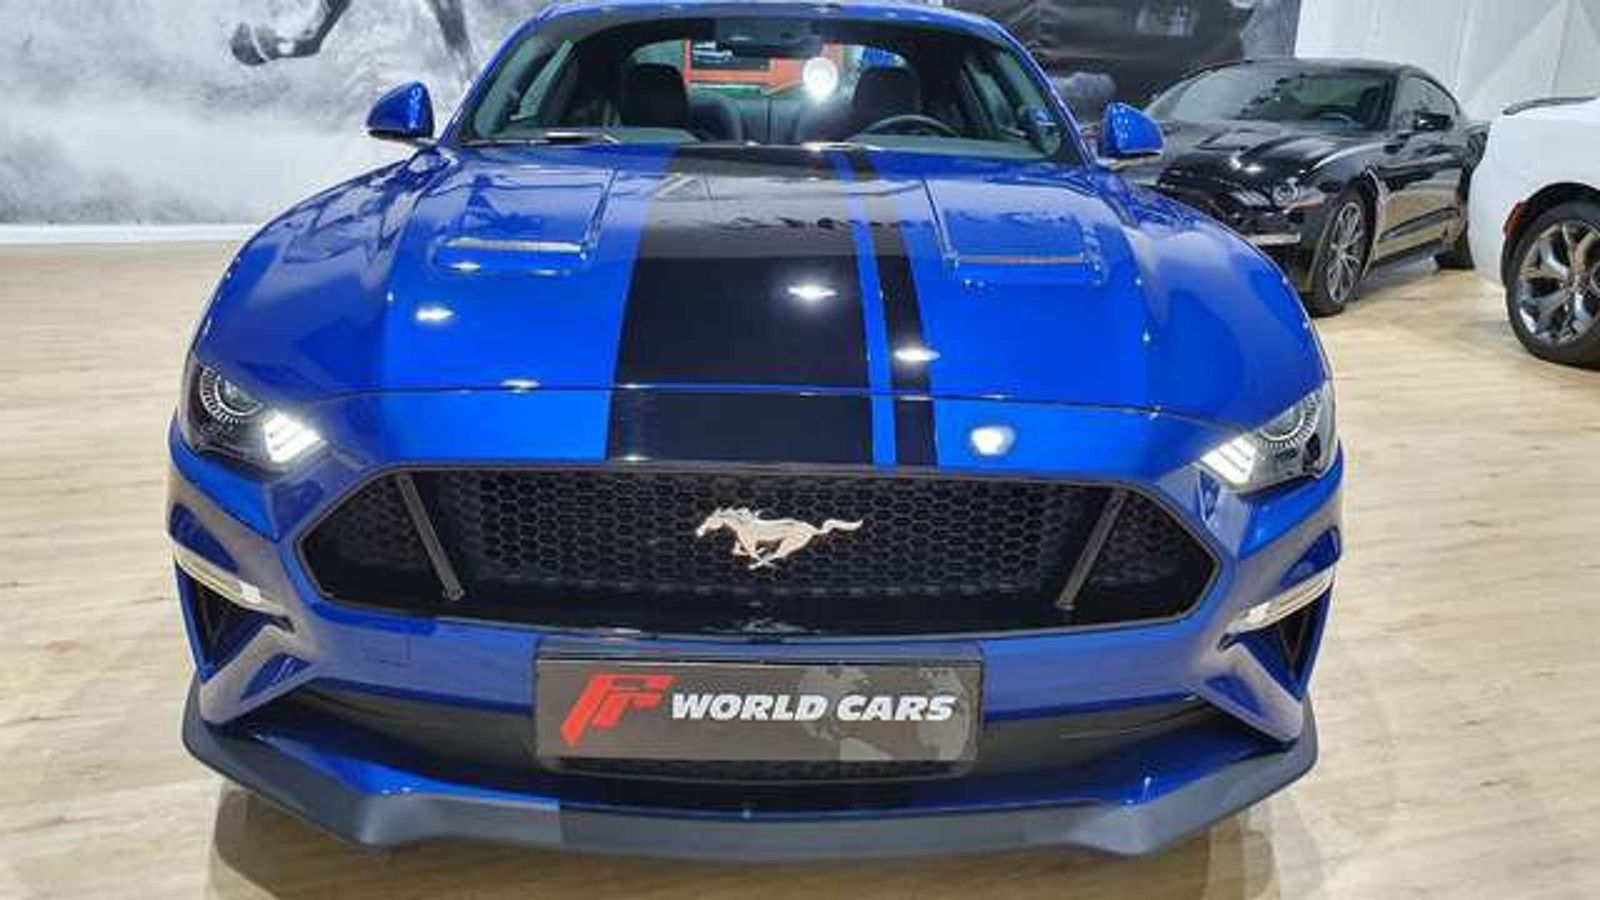 This 4951 cc engine size produces 421 horsepower with 530 nm torque. Ford Mustang Fastback 5 0 Ti Vct V8 Gt 336 Kw Carvago Com